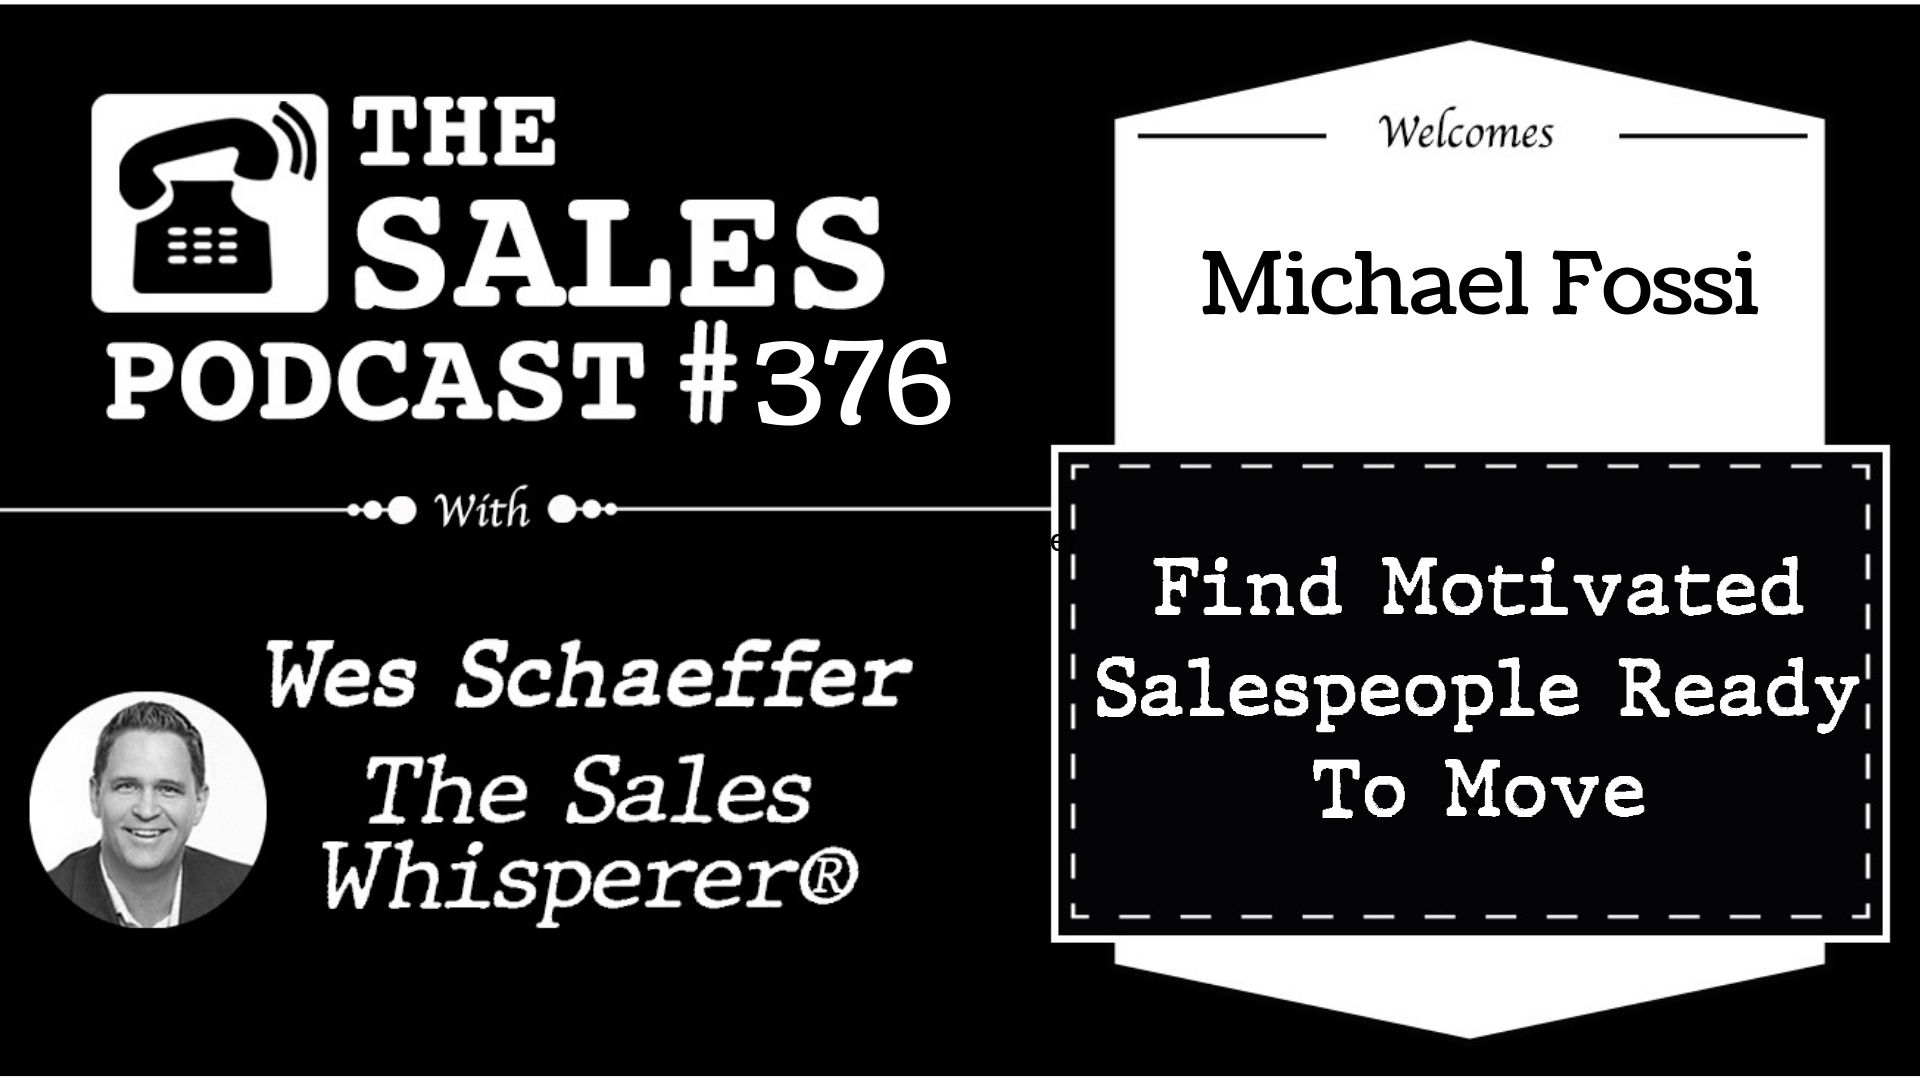 Find Your Real Sales Pro, Rainmaker's Michael Fossi